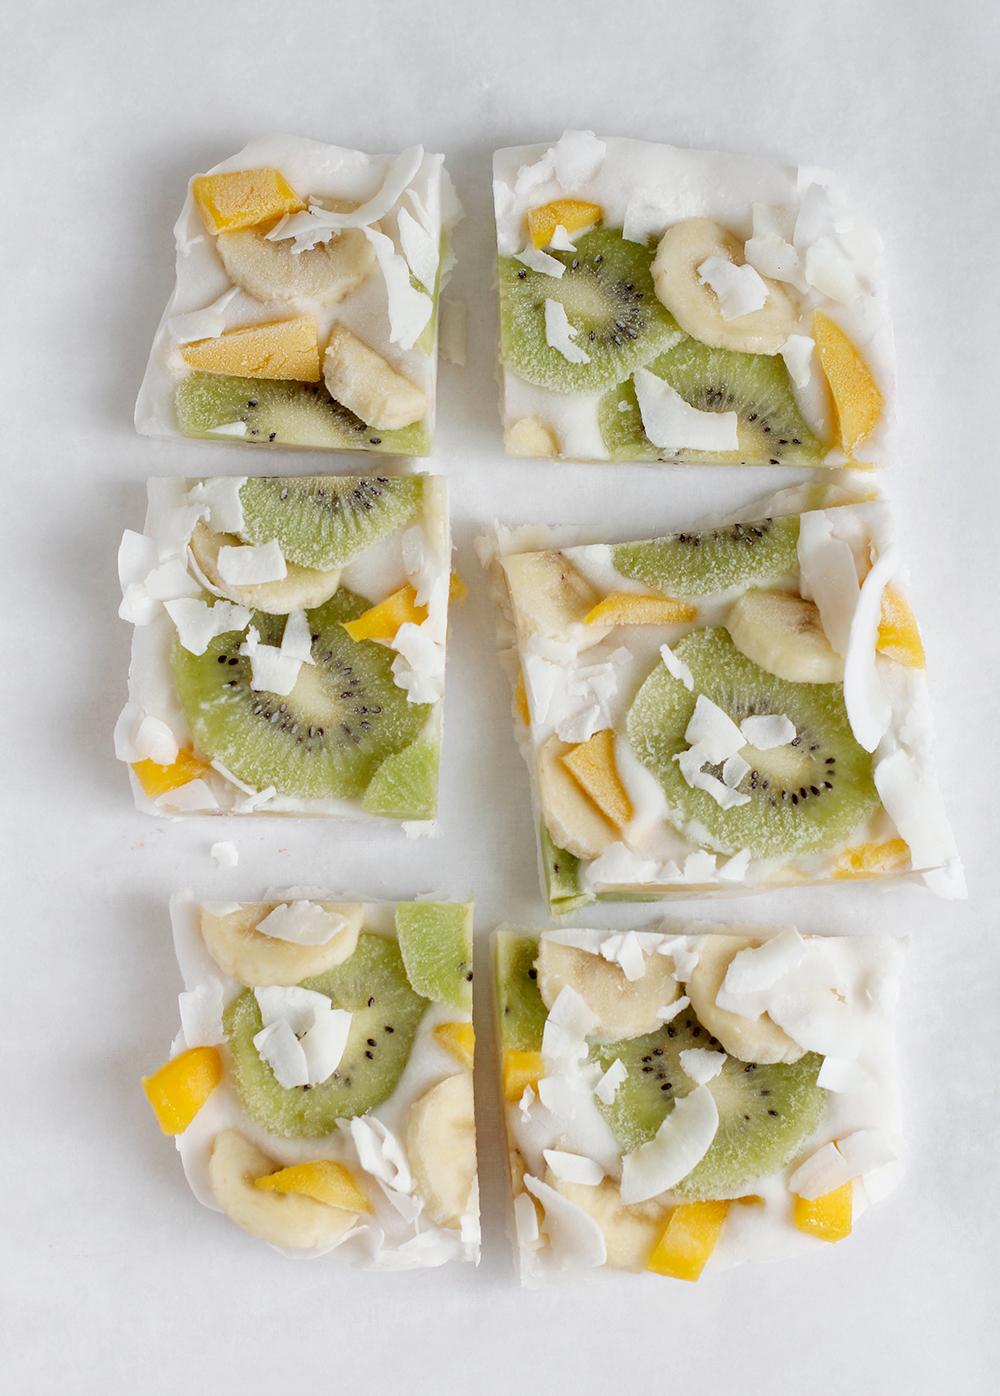 Rezept: Veganes Frozen Yogurt Bark vegan mit Mango, Kiwi, Banane und Kokos Chips | we love handmade